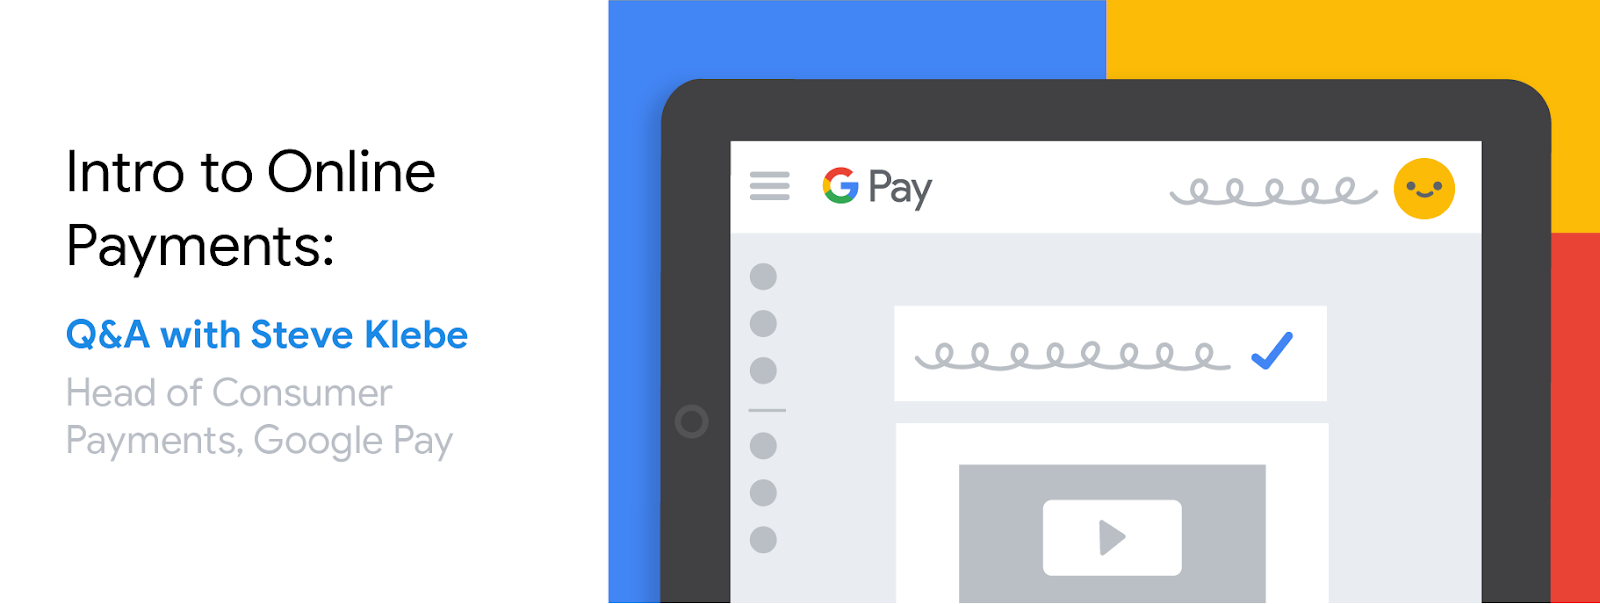 intro to online payments